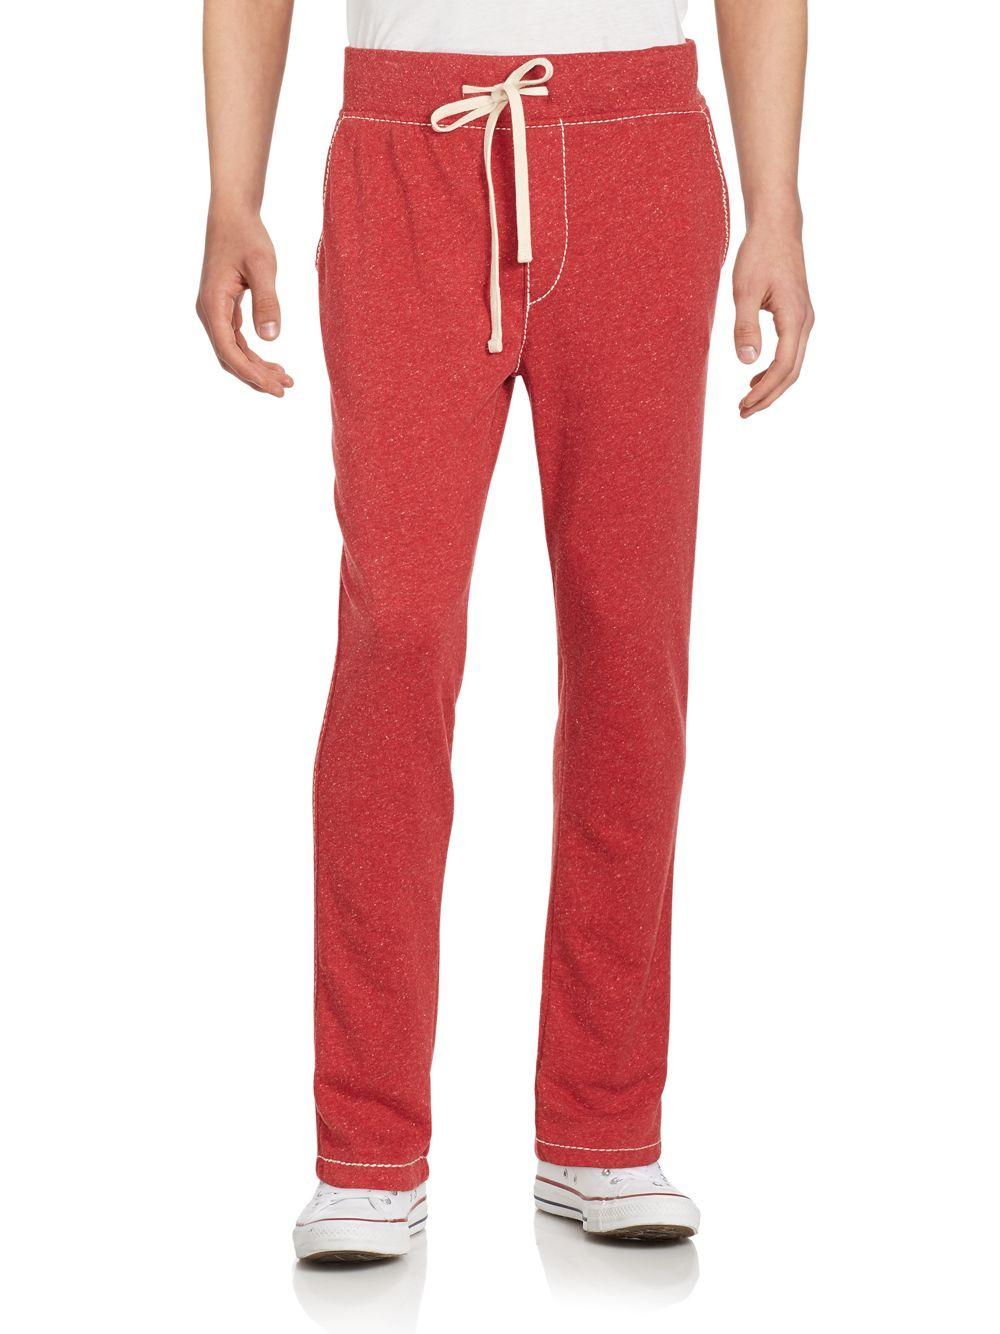 Shop for Fashion Men Jogger Pants Fitness Bodybuilding Gyms in LIQUEUR RED XXXS(28) online at $ and discover other cheap Jeans at bookbestnj.cf Cheapest and Latest women & men fashion site including categories such as dresses, shoes, .